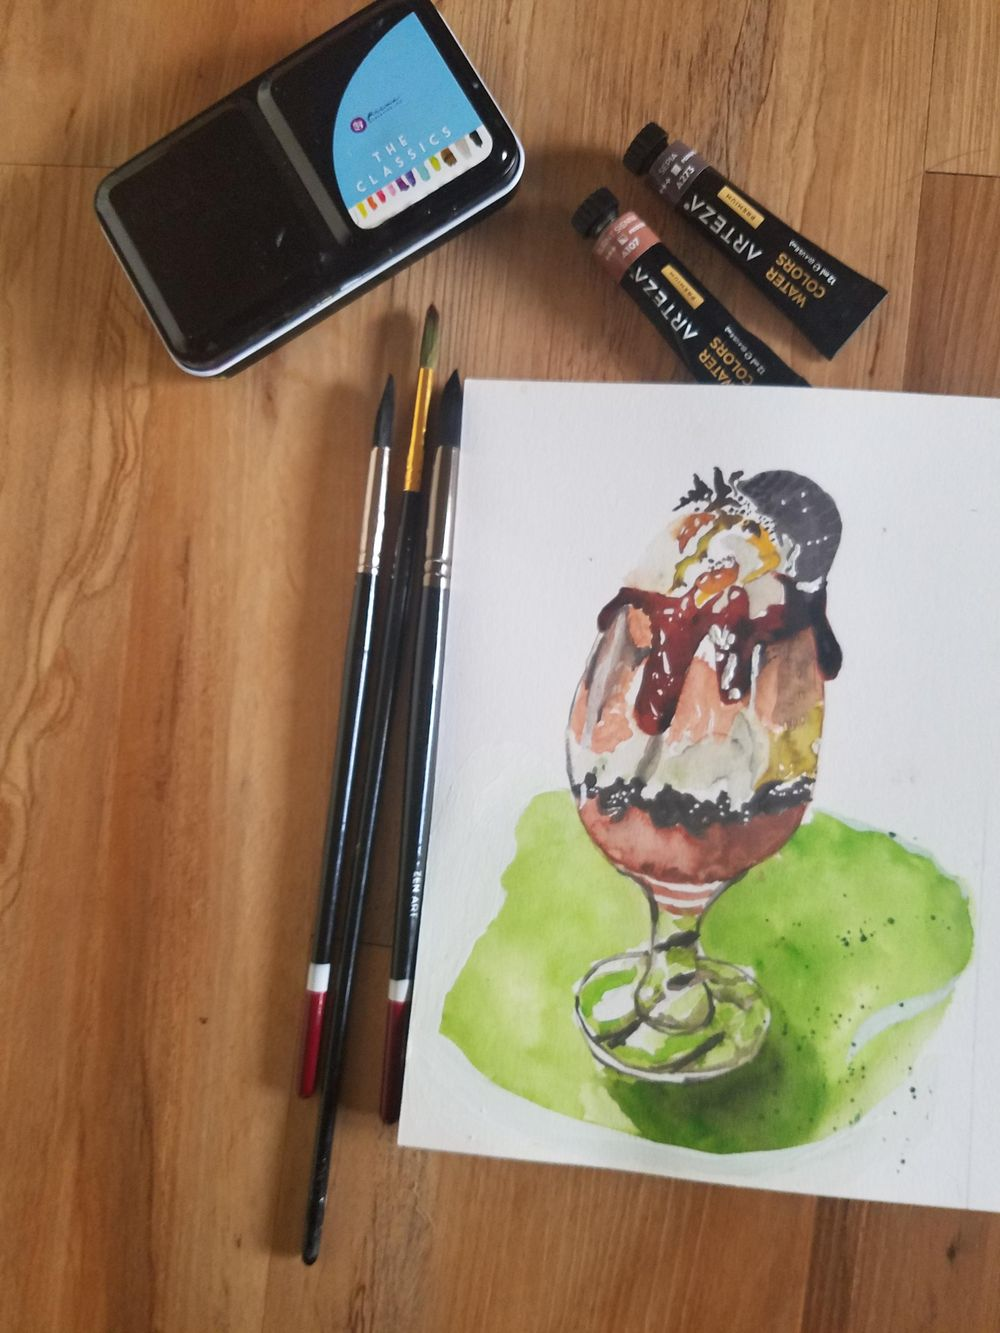 Food Illustrations - image 4 - student project